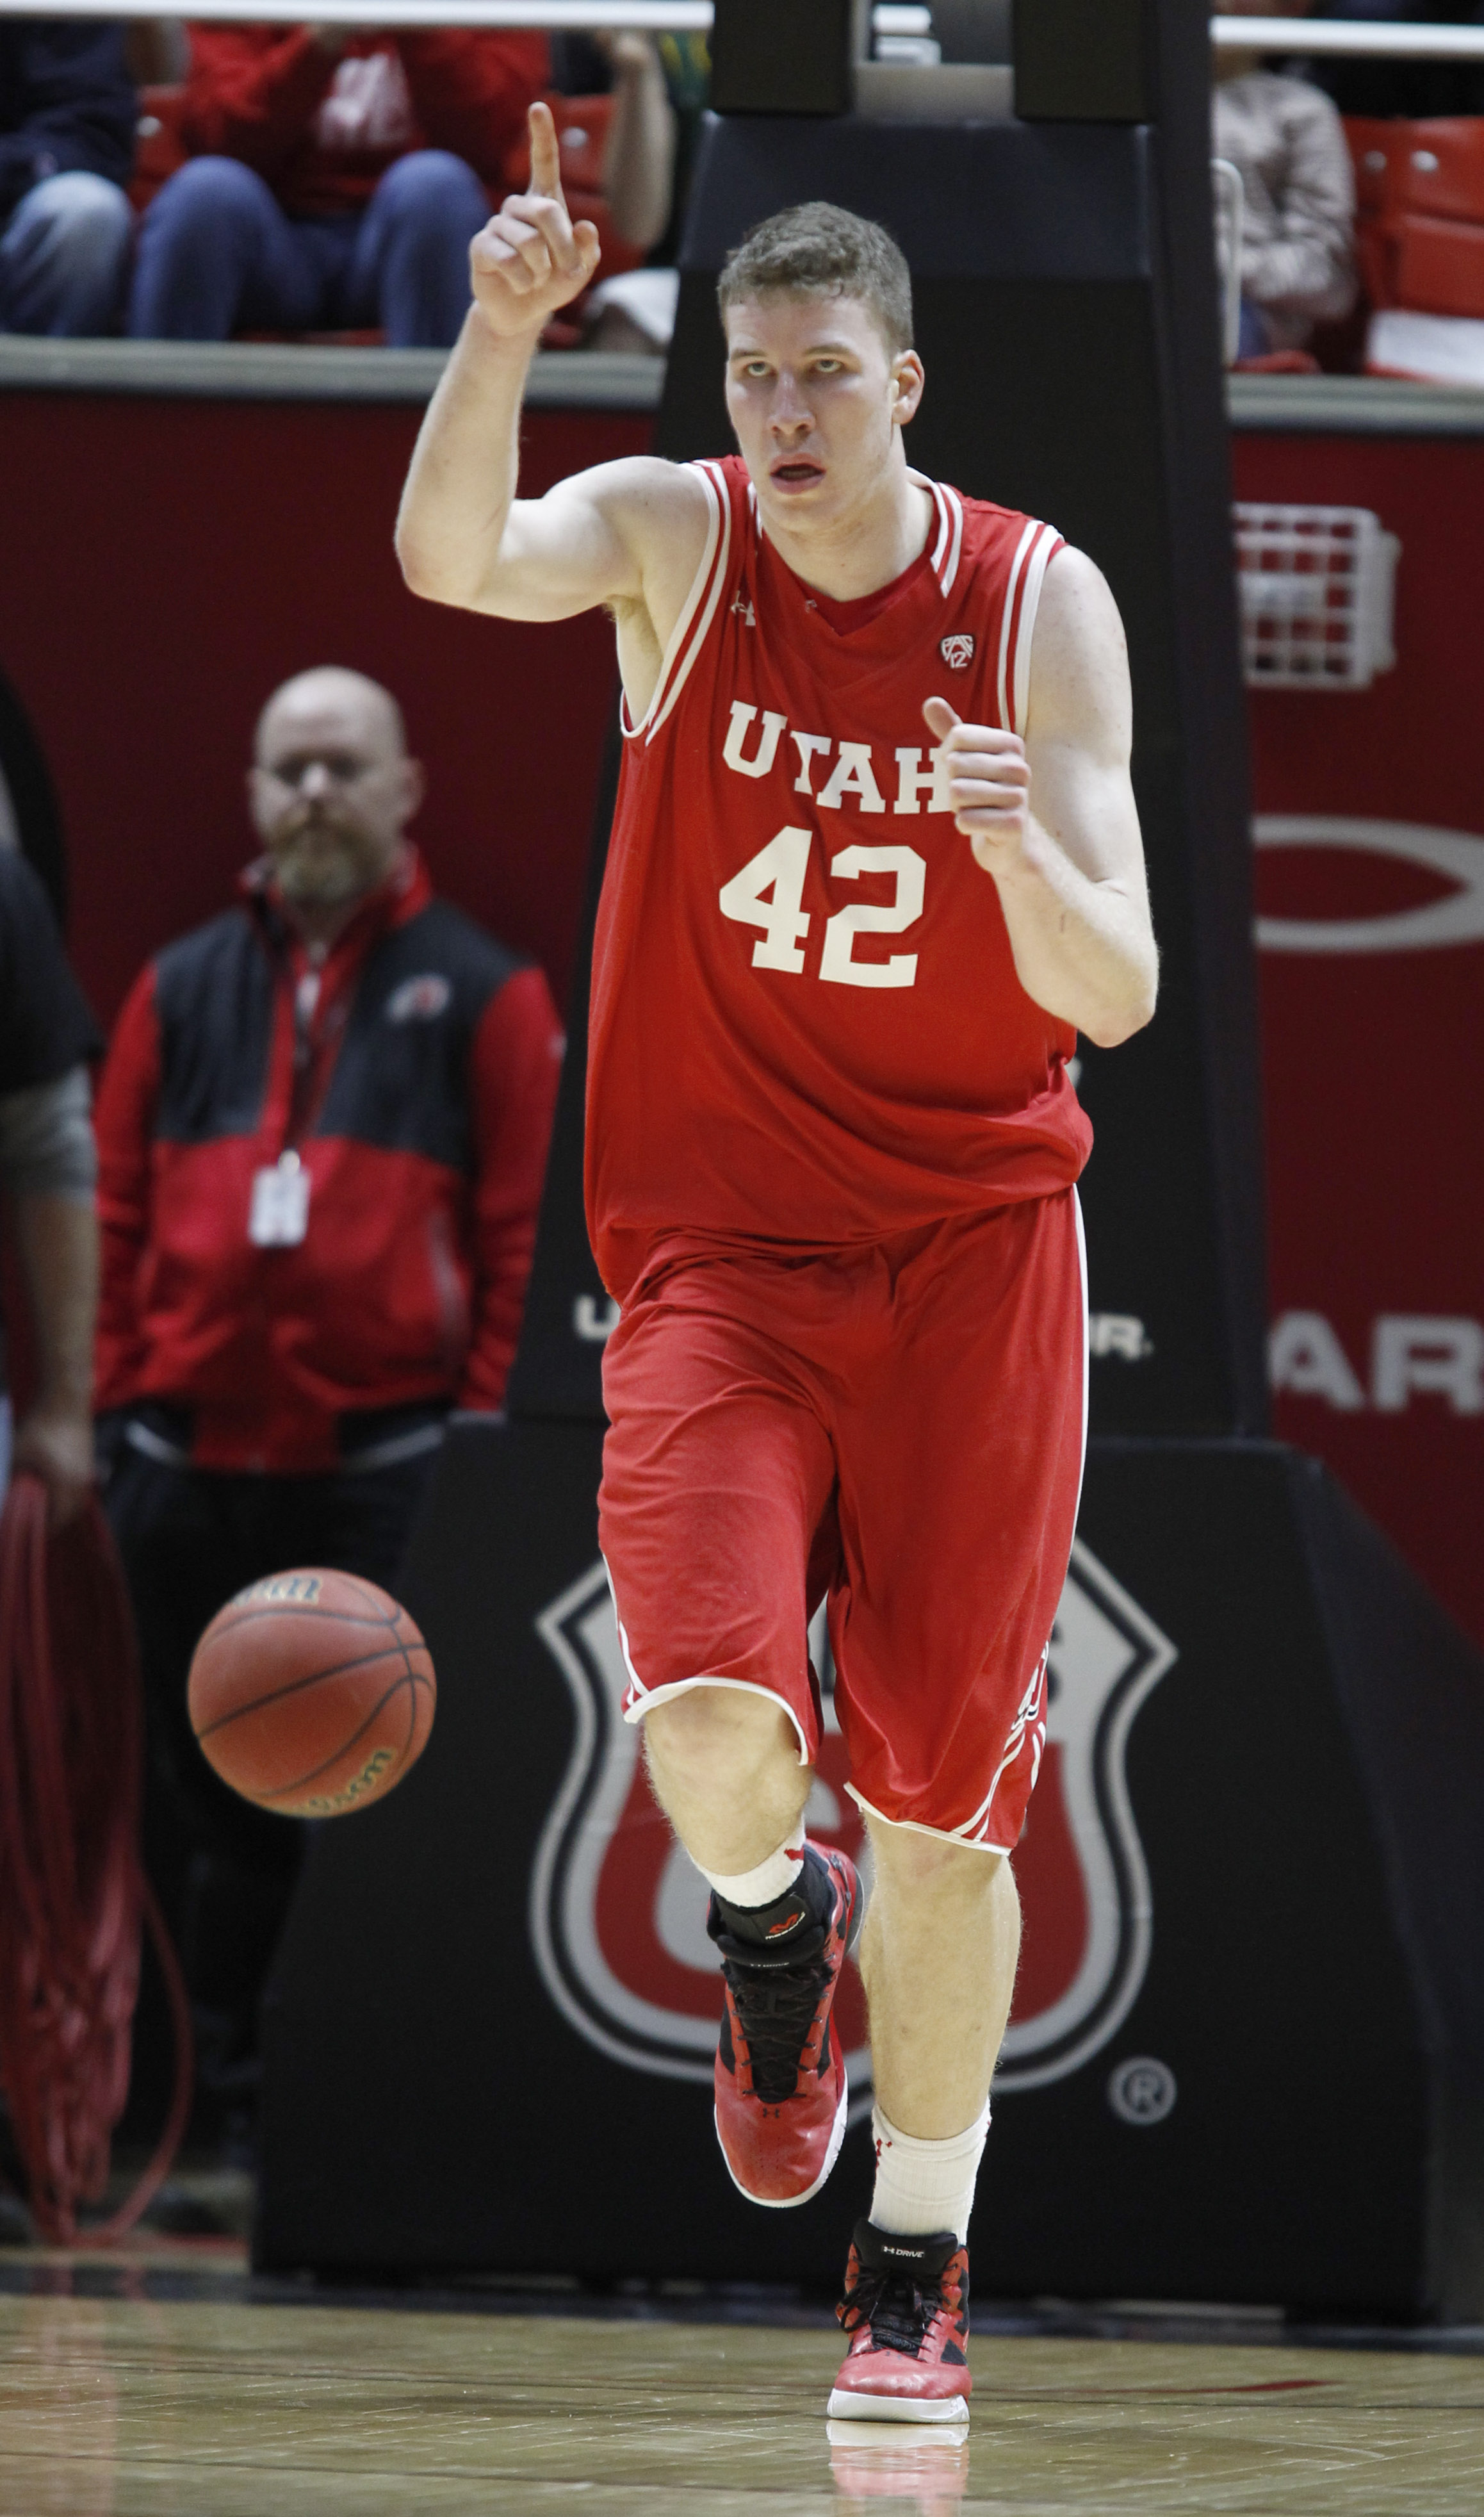 FILE - This Feb. 27, 2016 file photo shows Utah forward Jakob Poeltl (42) celebrating a basket during the second half of an NCAA college basketball game against Arizona in Salt Lake City. Poeltl has been named Pac-12 player of the year and Oregon's Dana A